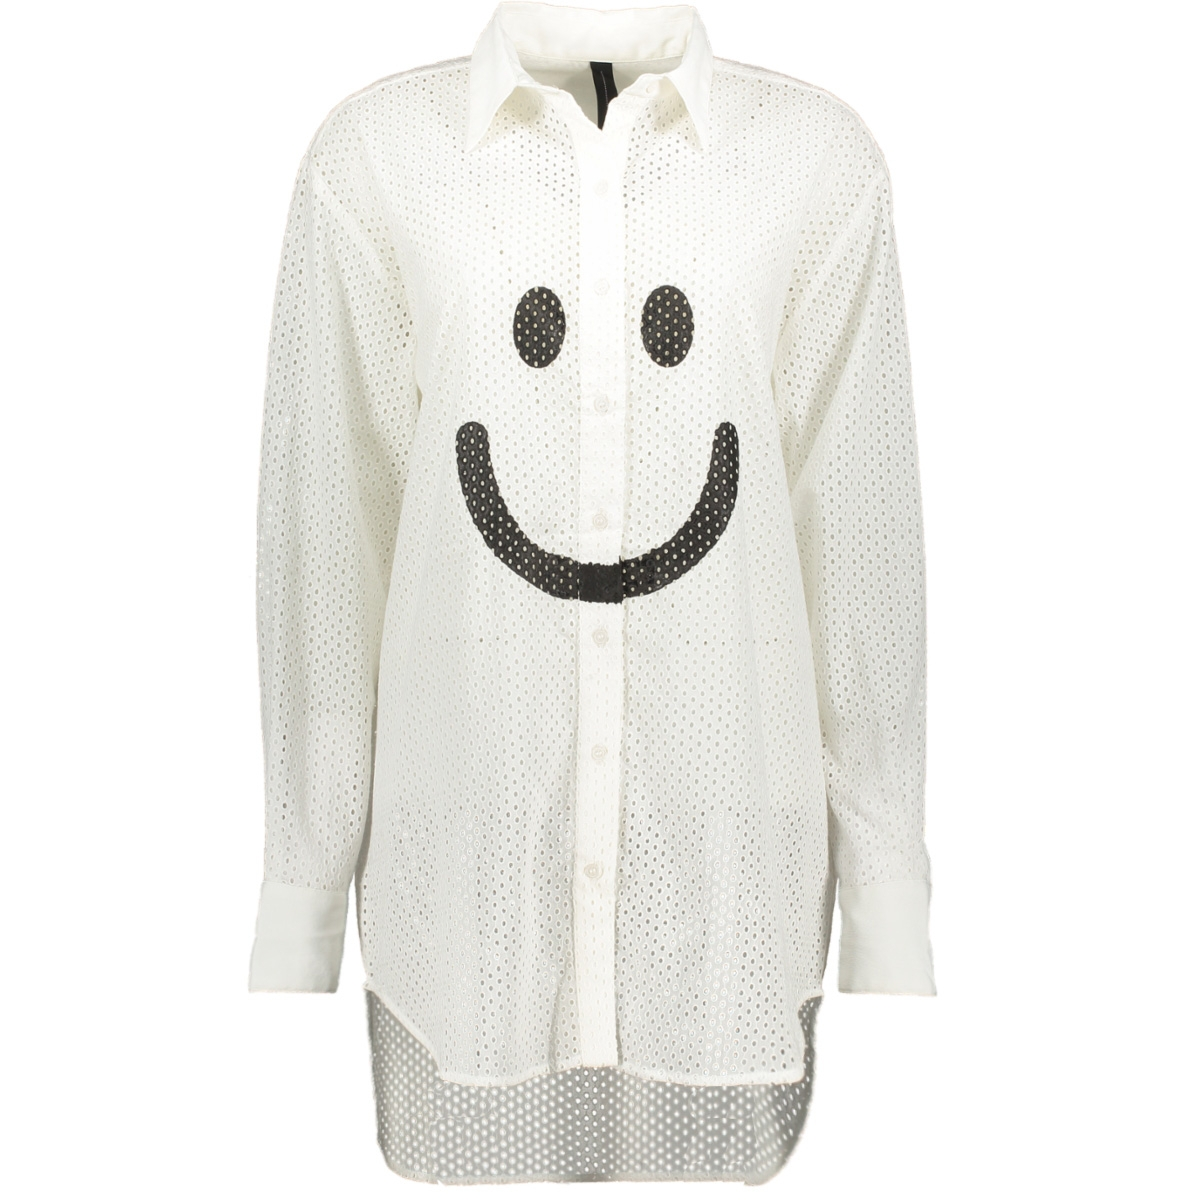 happy blouse 20 407 9103 10 days blouse white